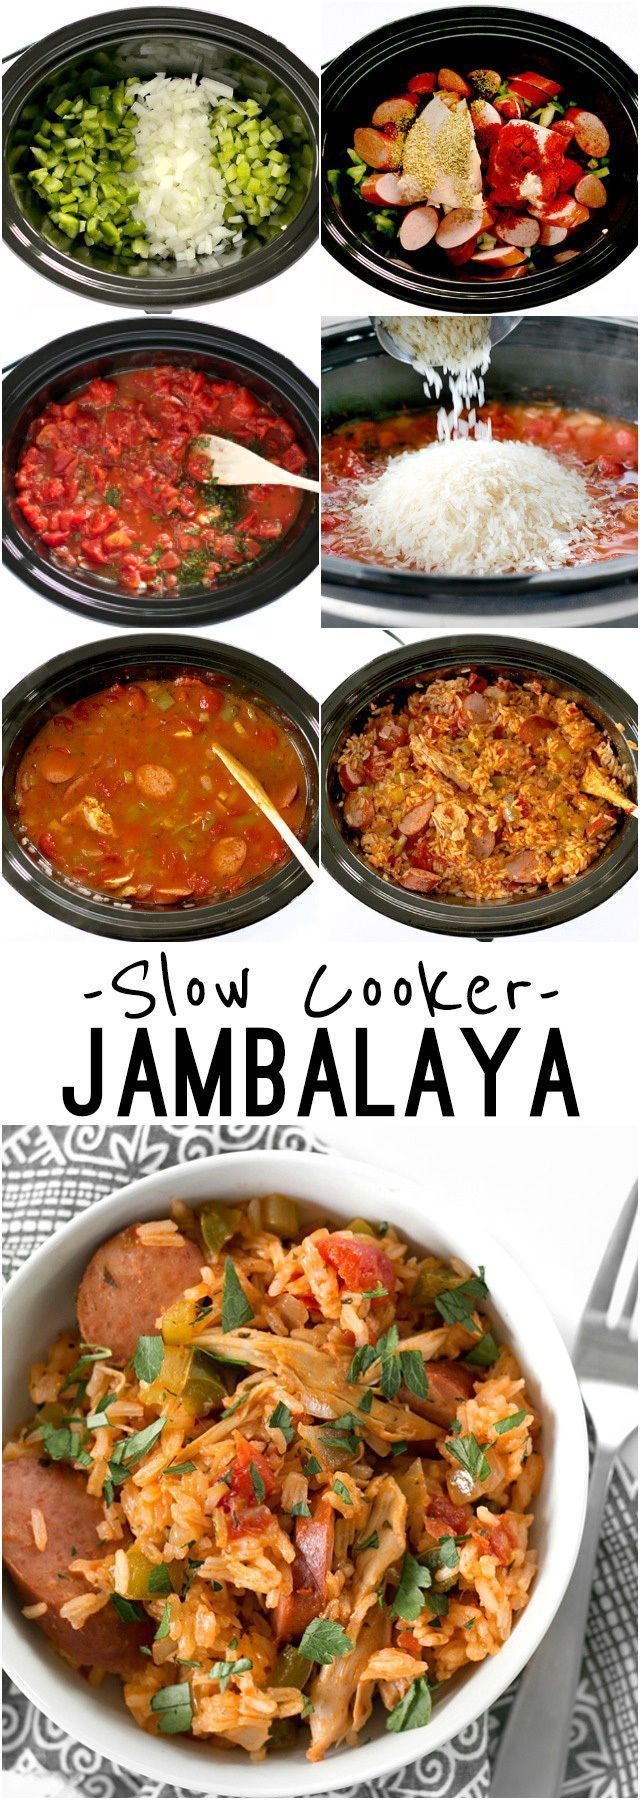 Slow Cooker Jambalaya has all the big flavor of the classic Louisiana dish with half the effort. /budgetbytes/